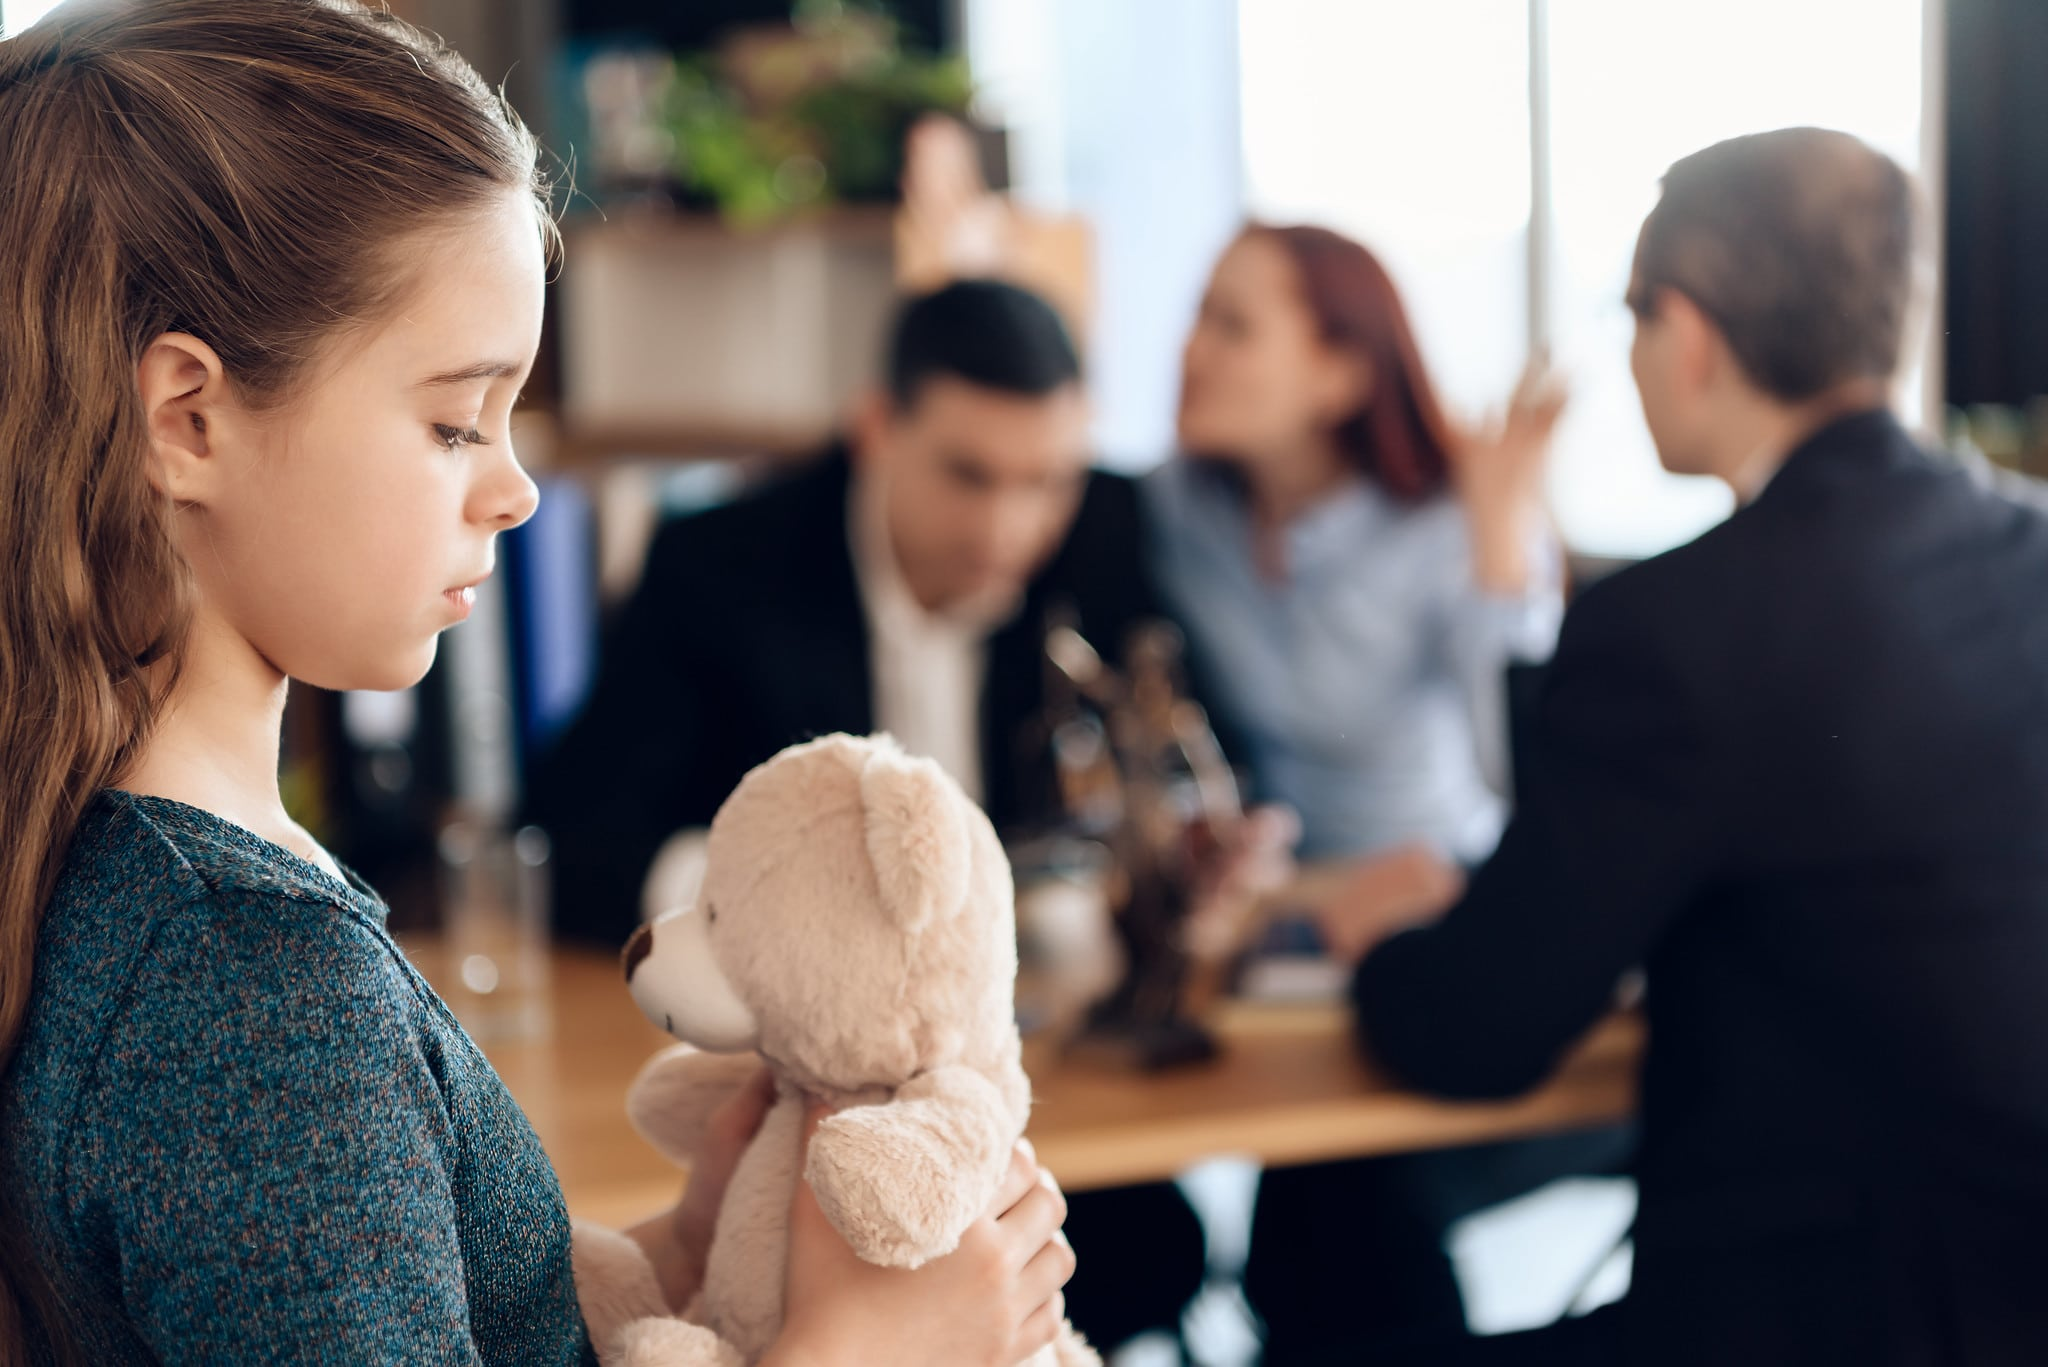 girl holding a teddy bear while her parents argue in the background